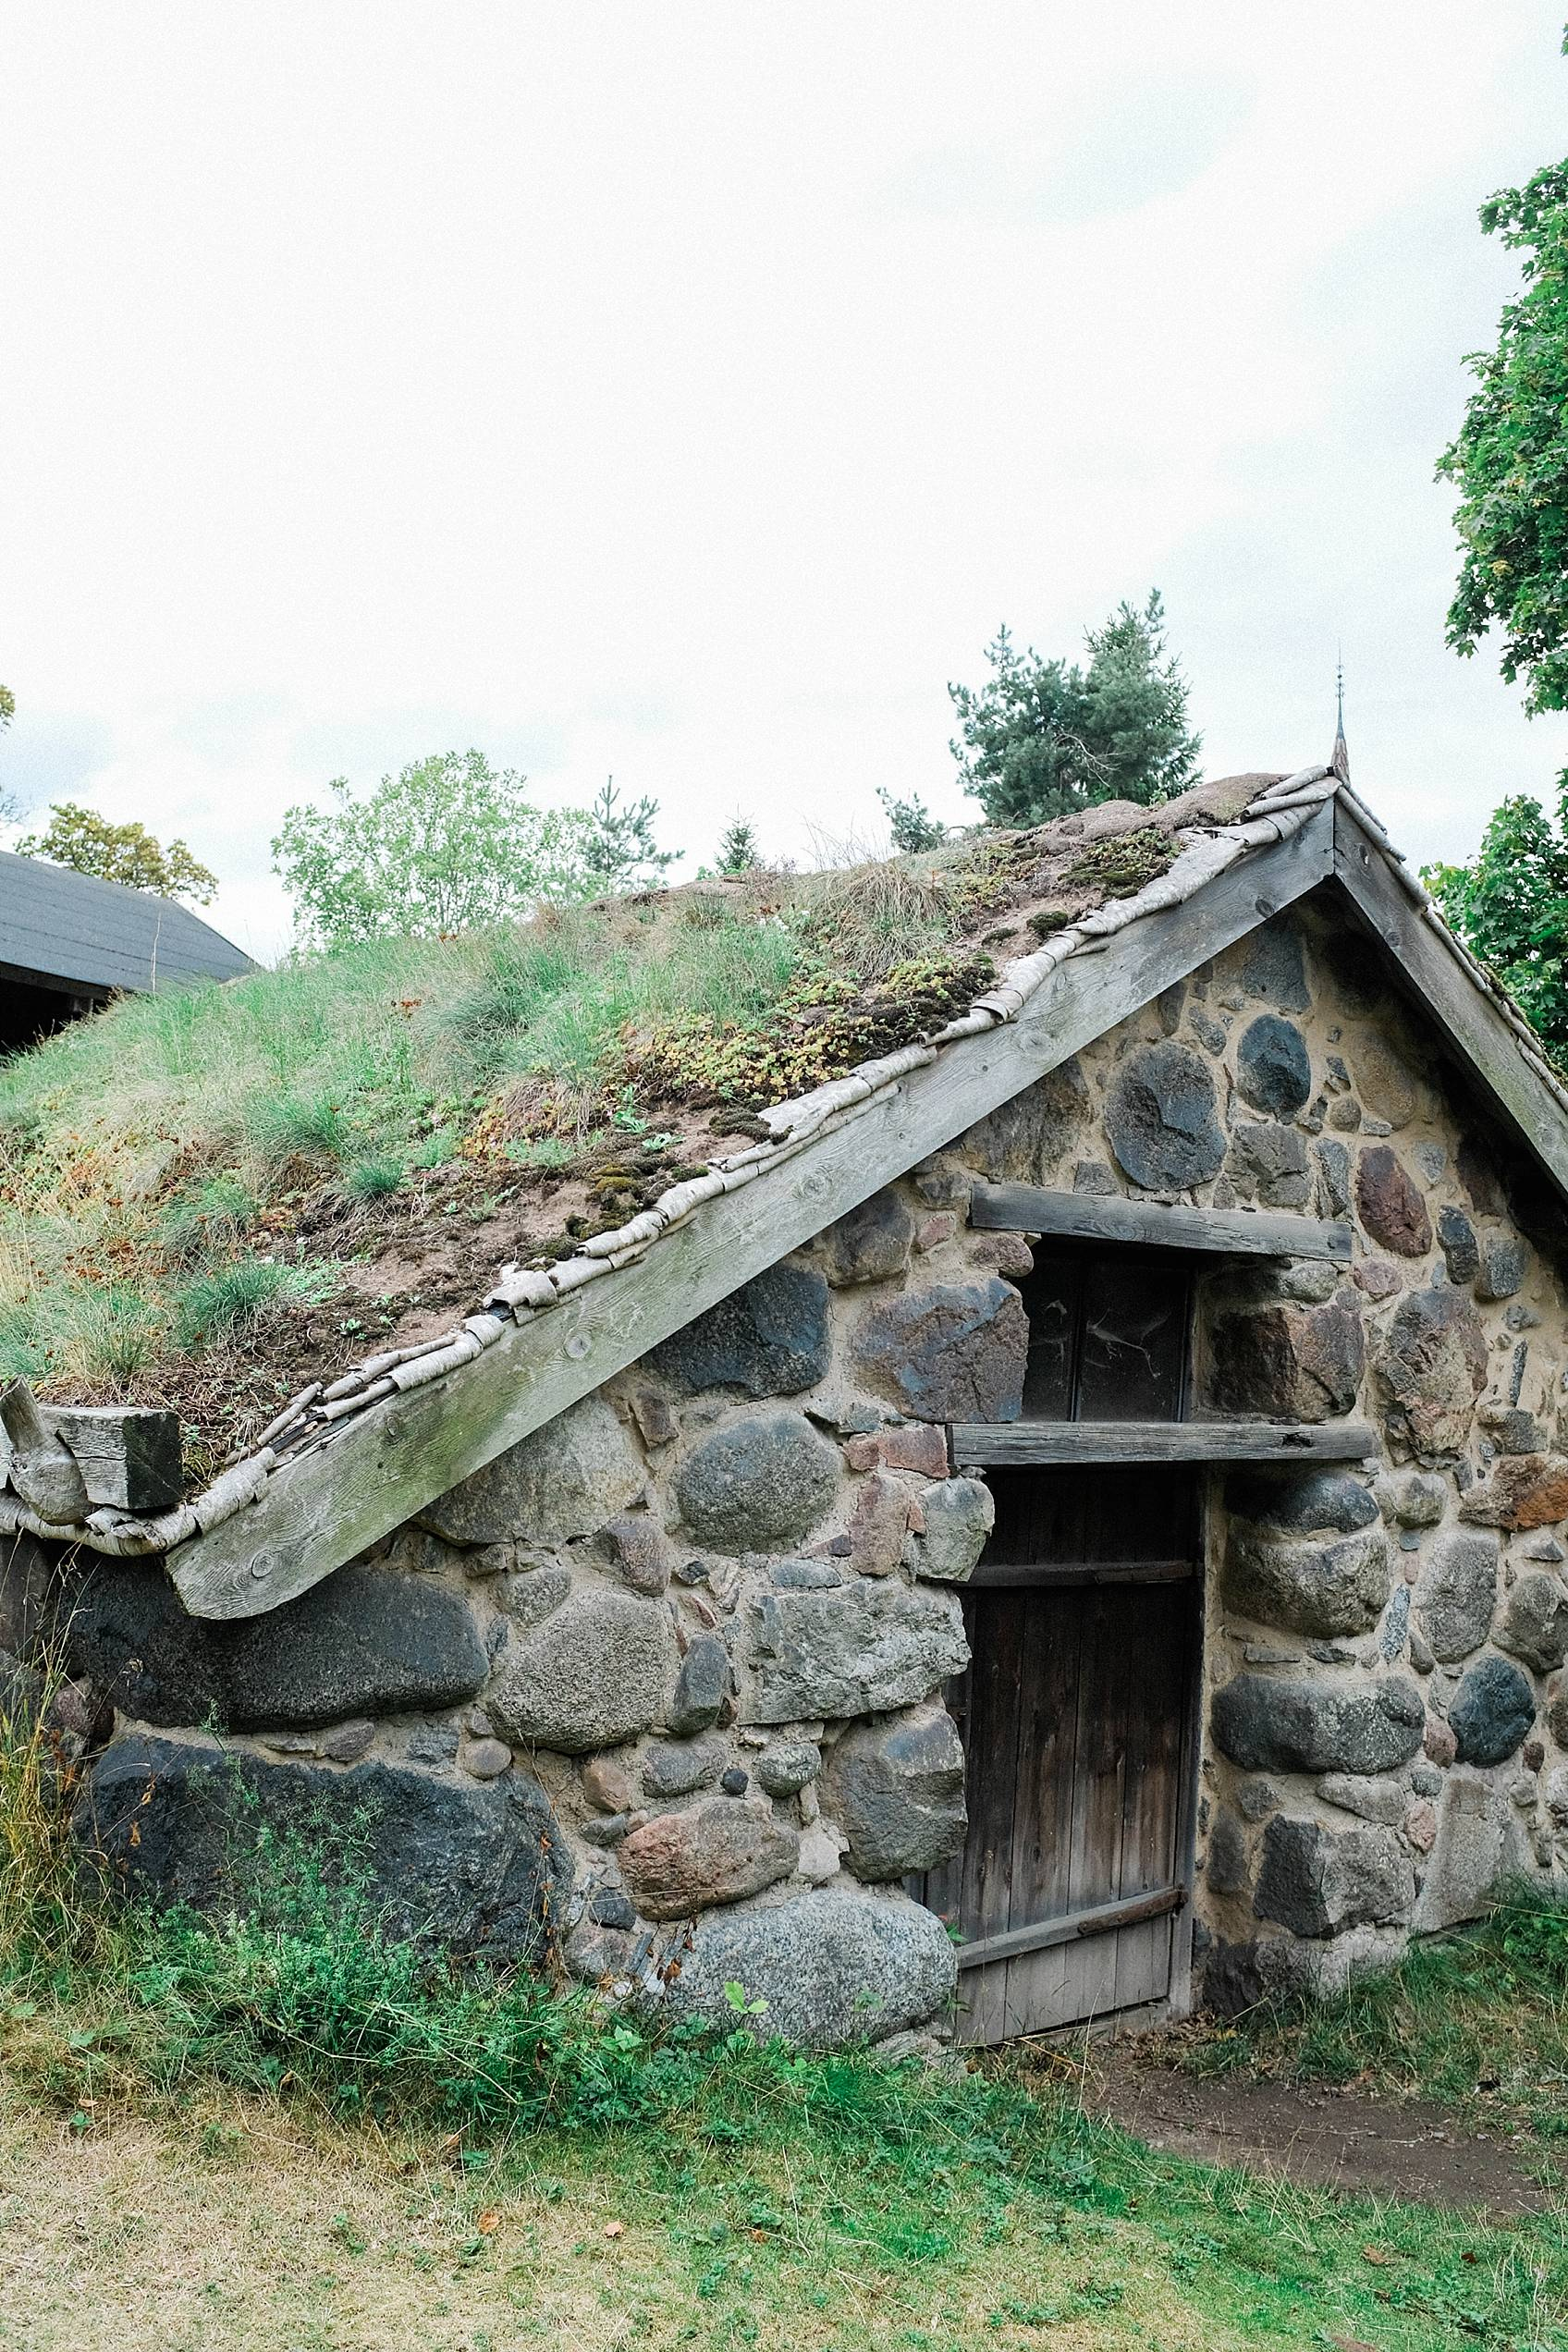 skansen stockholm cottage living decor for inspiration, stone small cottage with plants on roof